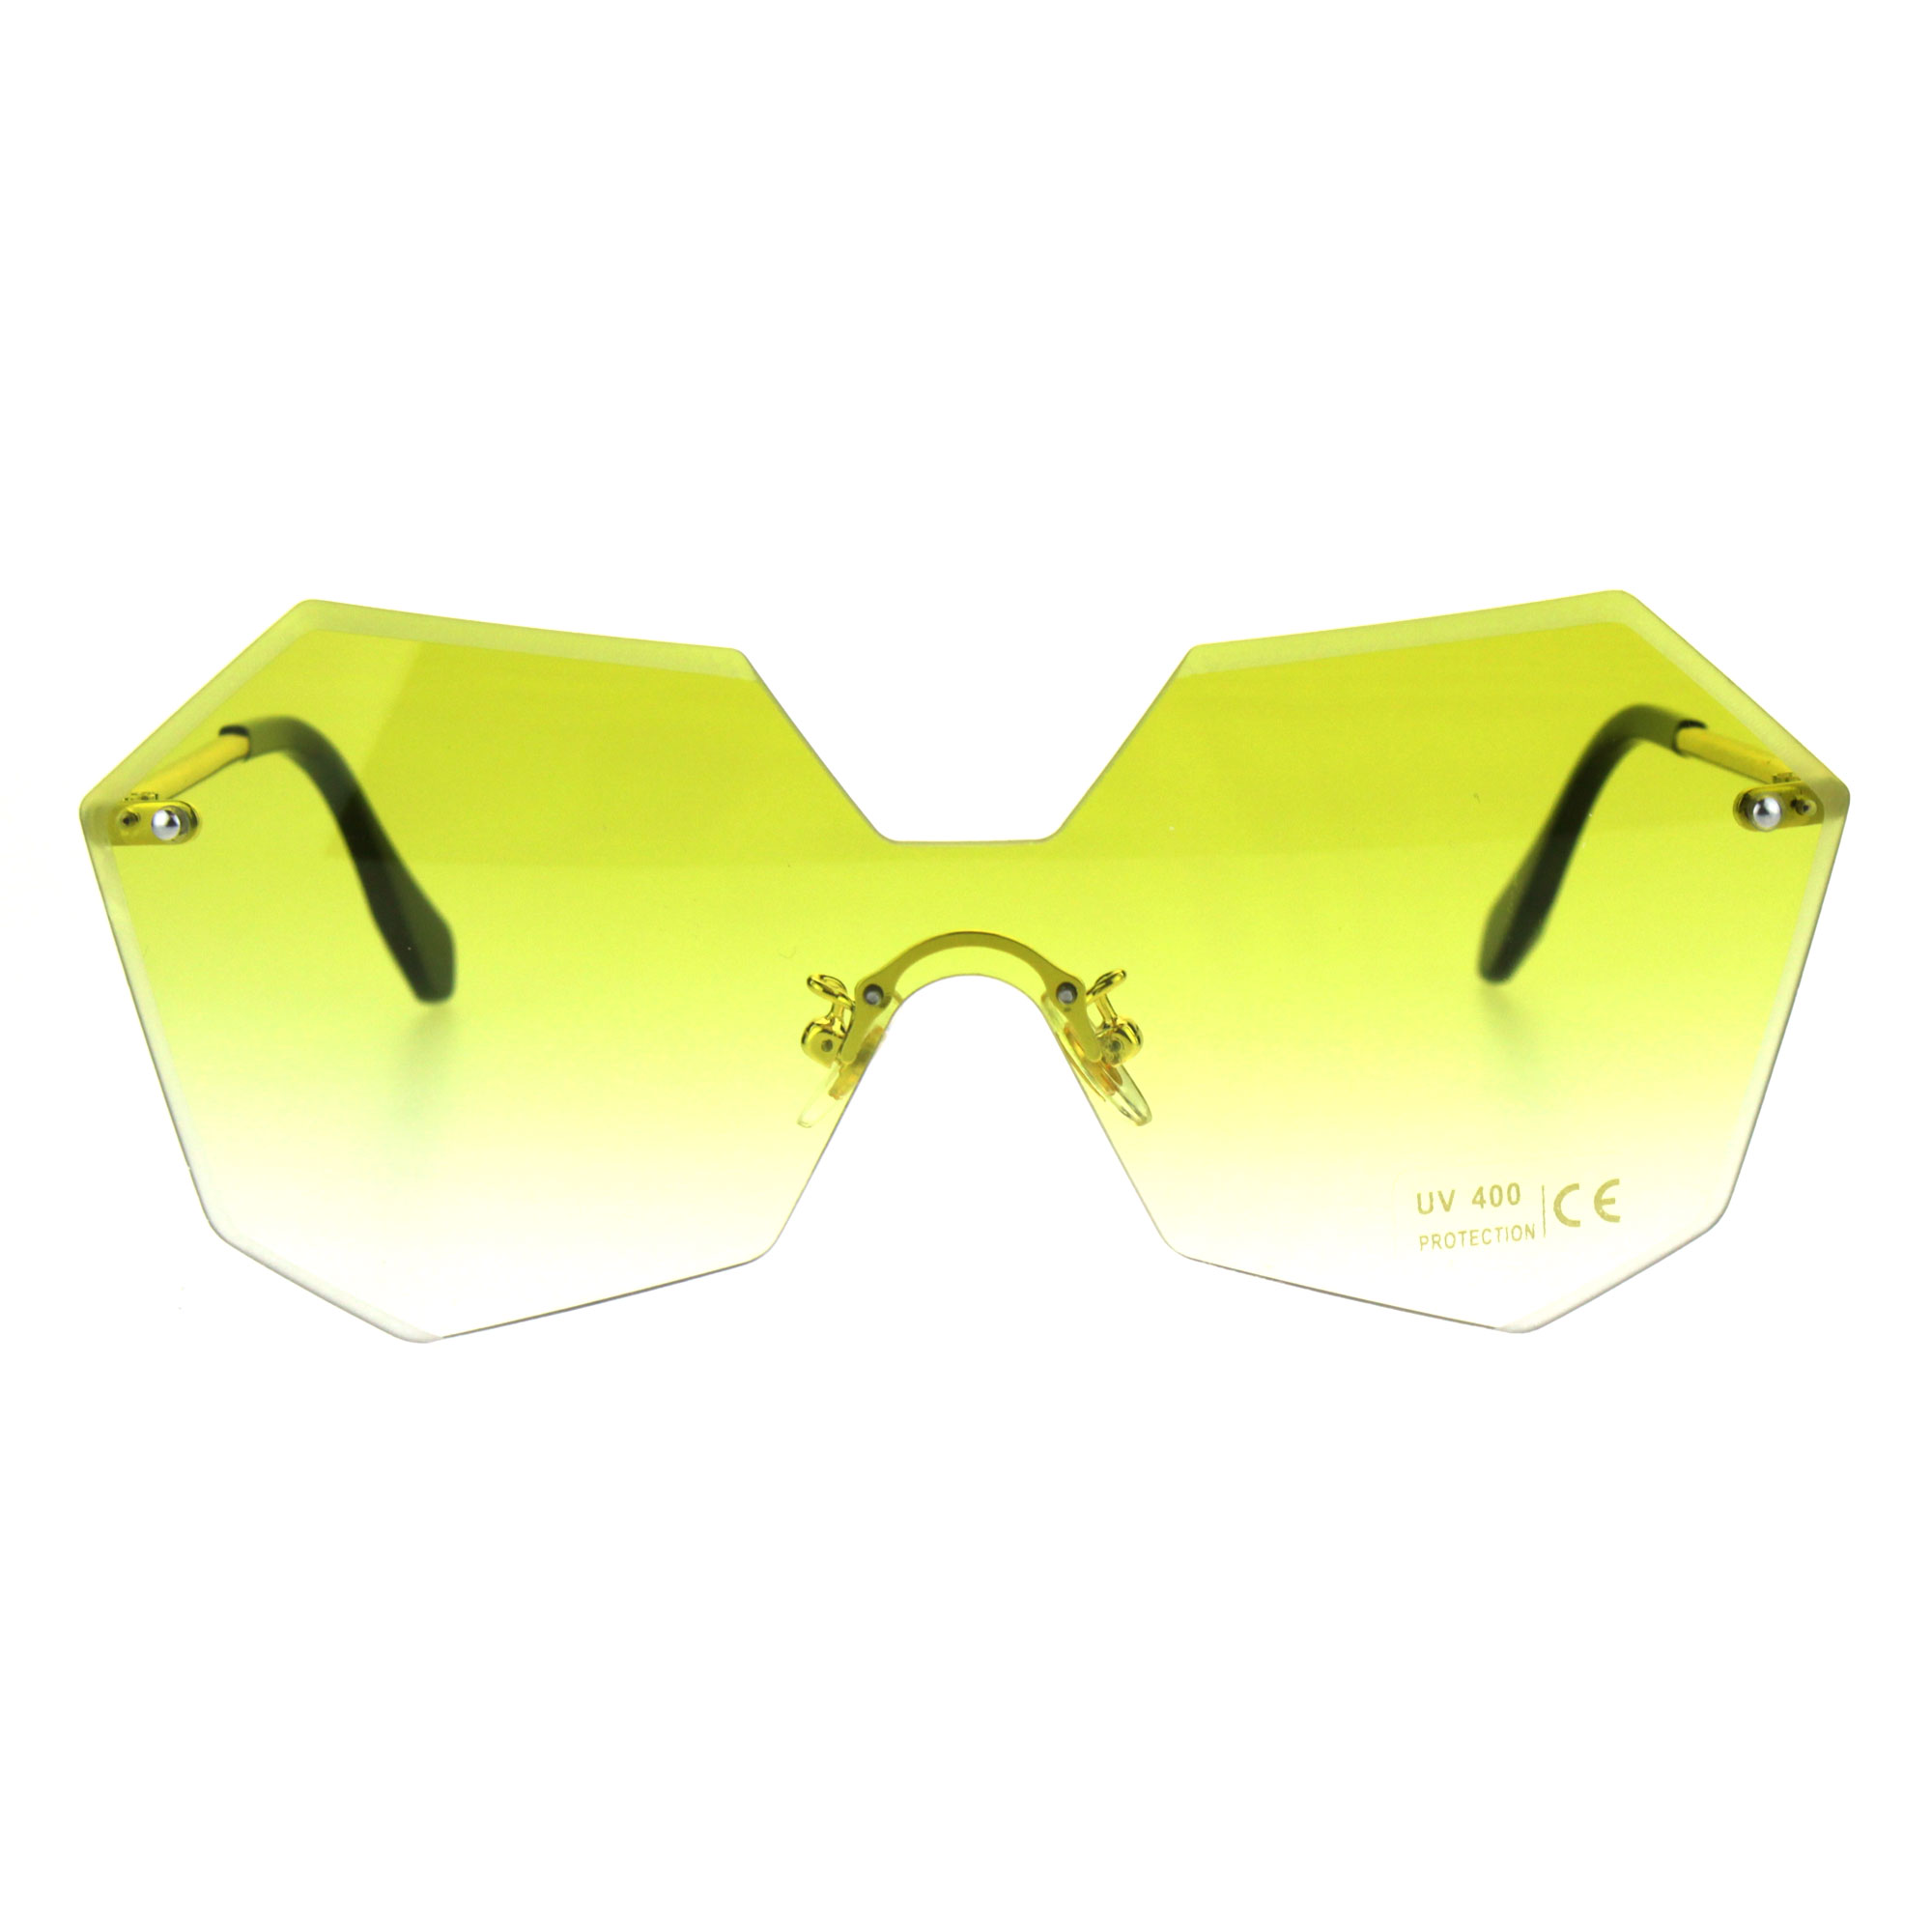 12356bbf73 Womens Rimless Squared OCTAGON Butterfly Color Sunglasses Yellow. About  this product. Picture 1 of 5  Picture 2 of 5 ...